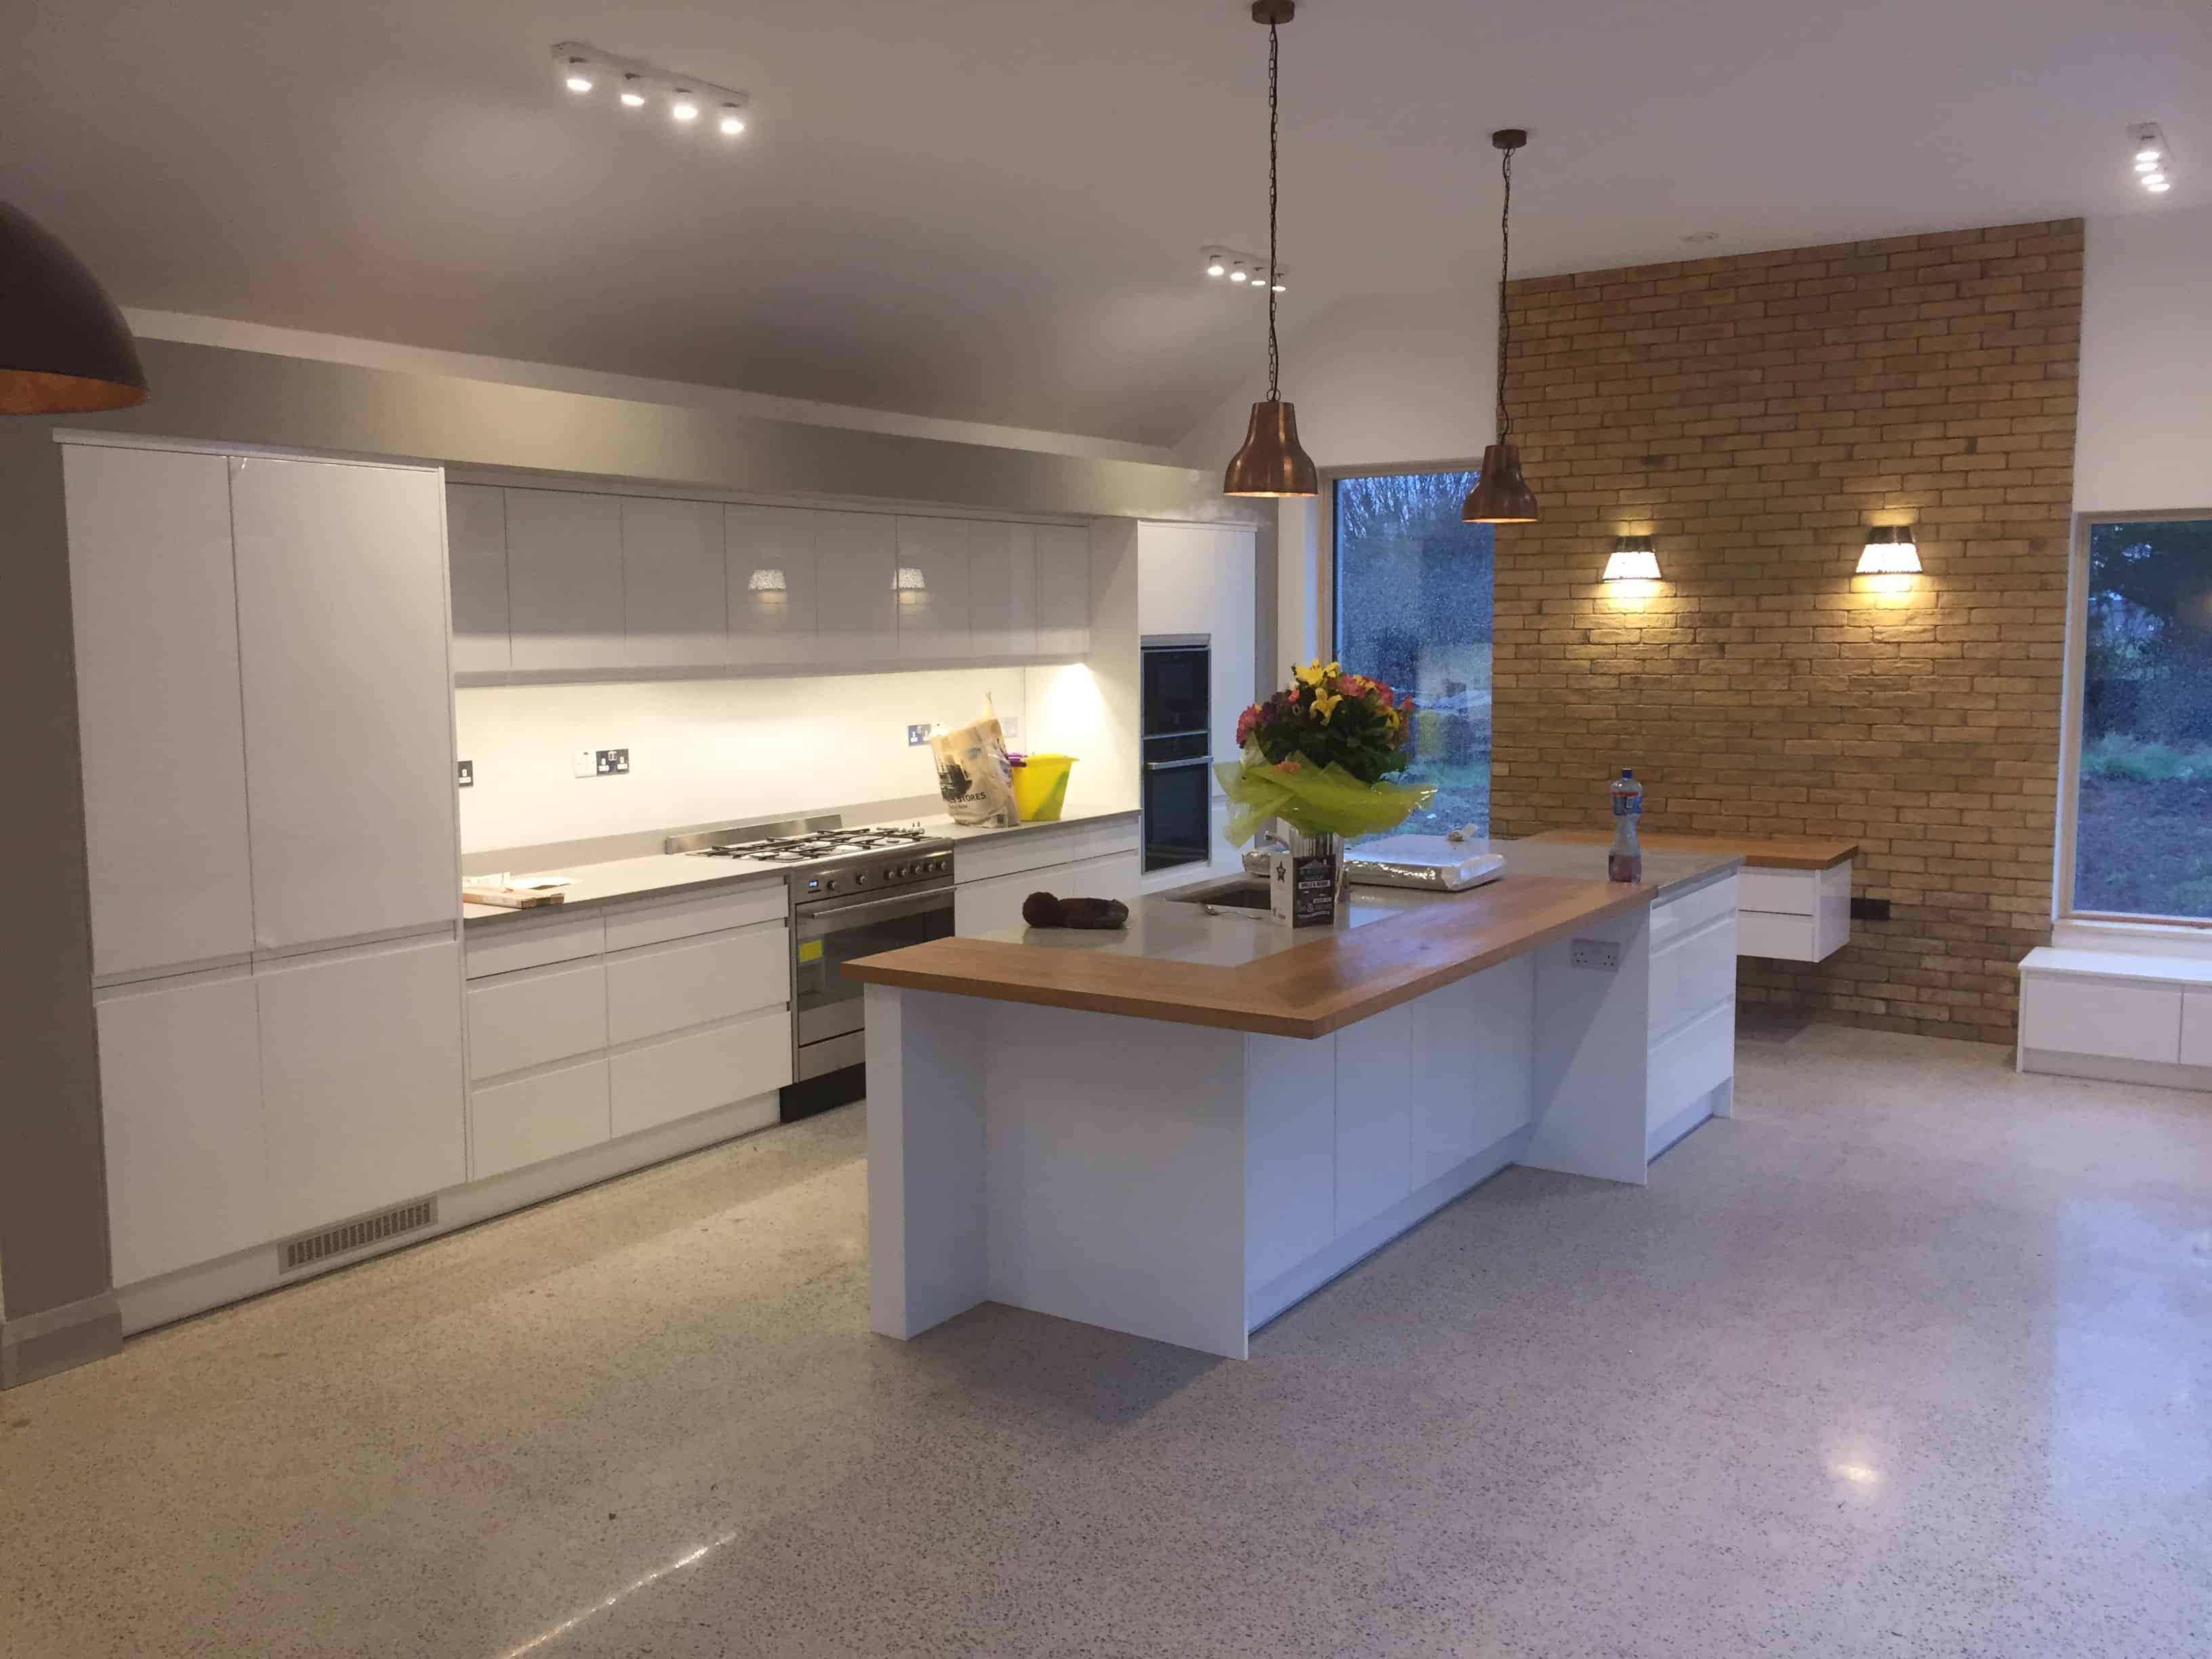 Kitchen Floor tiles and wall tiles by NCon Tiling Ltd Tiling Contractors